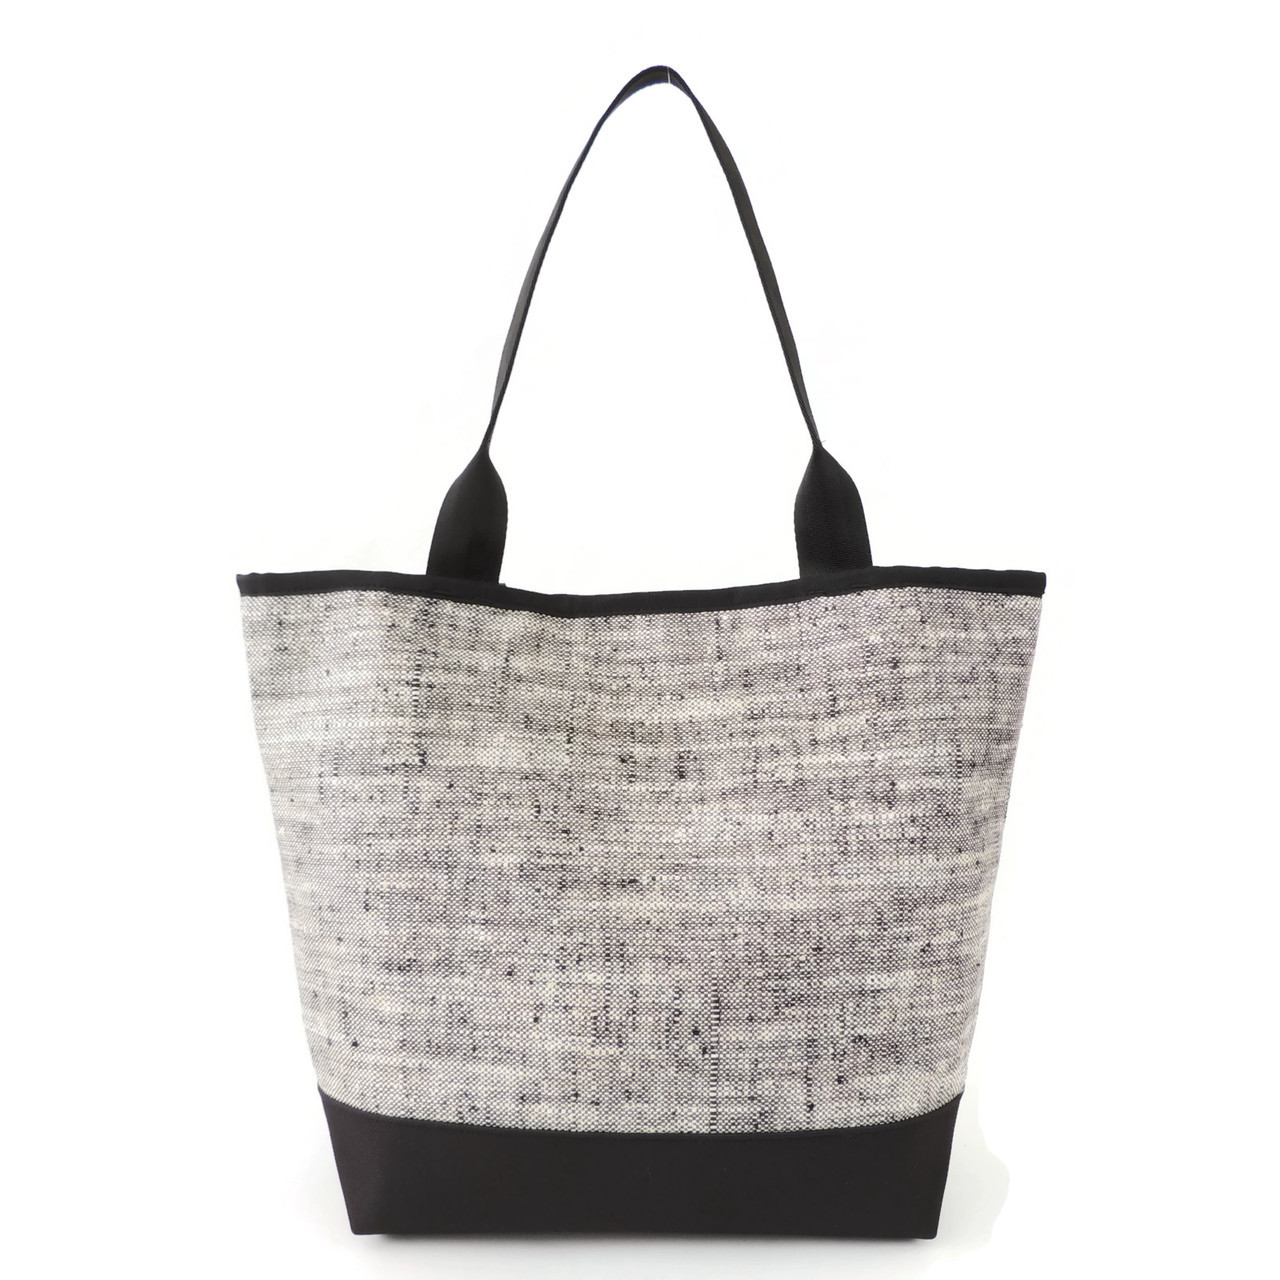 Signature Tote in Beckett